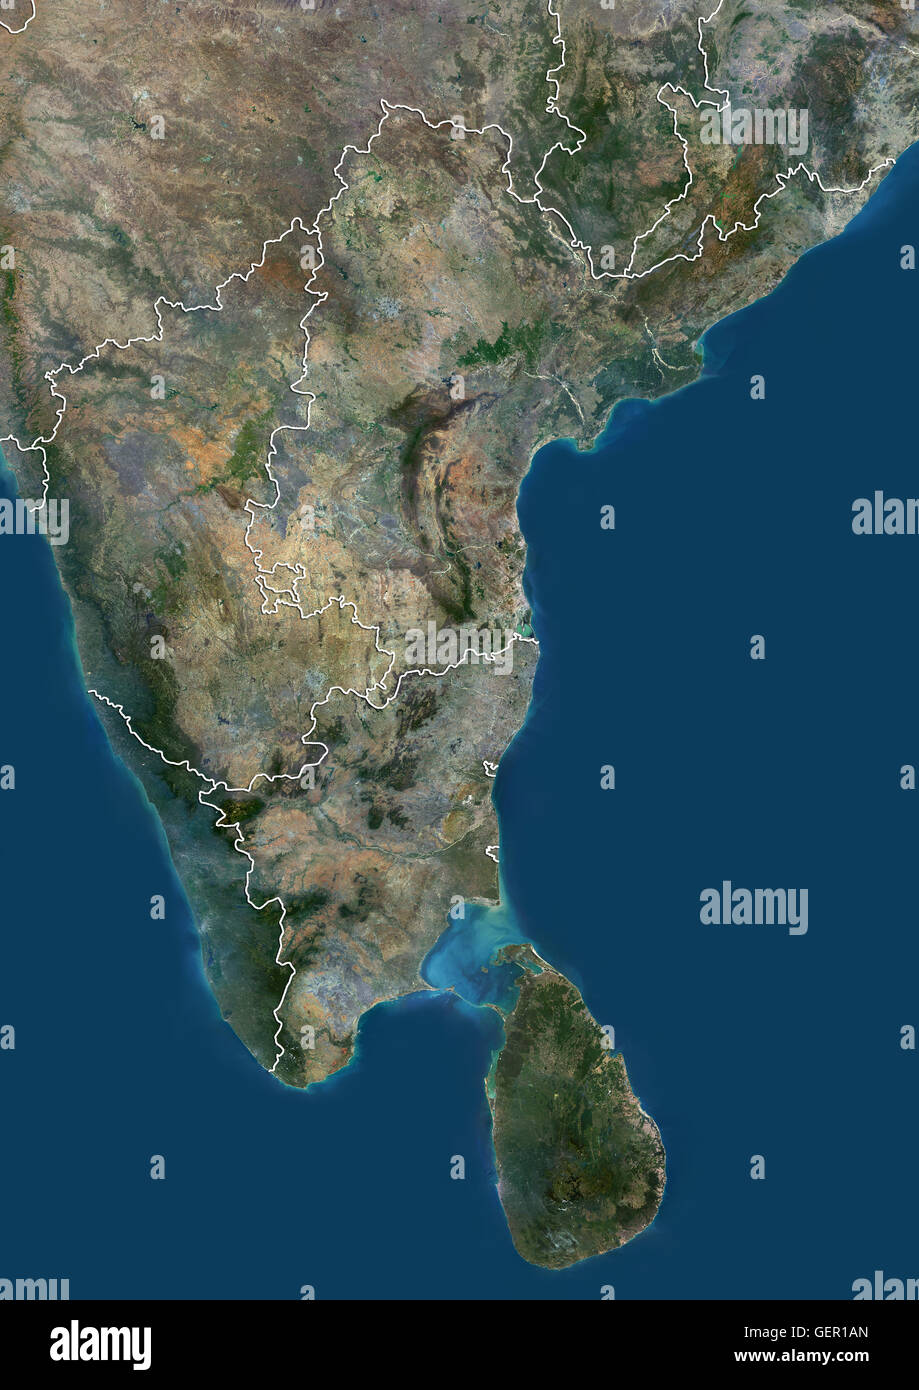 Satellite view of South India and Sri Lanka with administrative